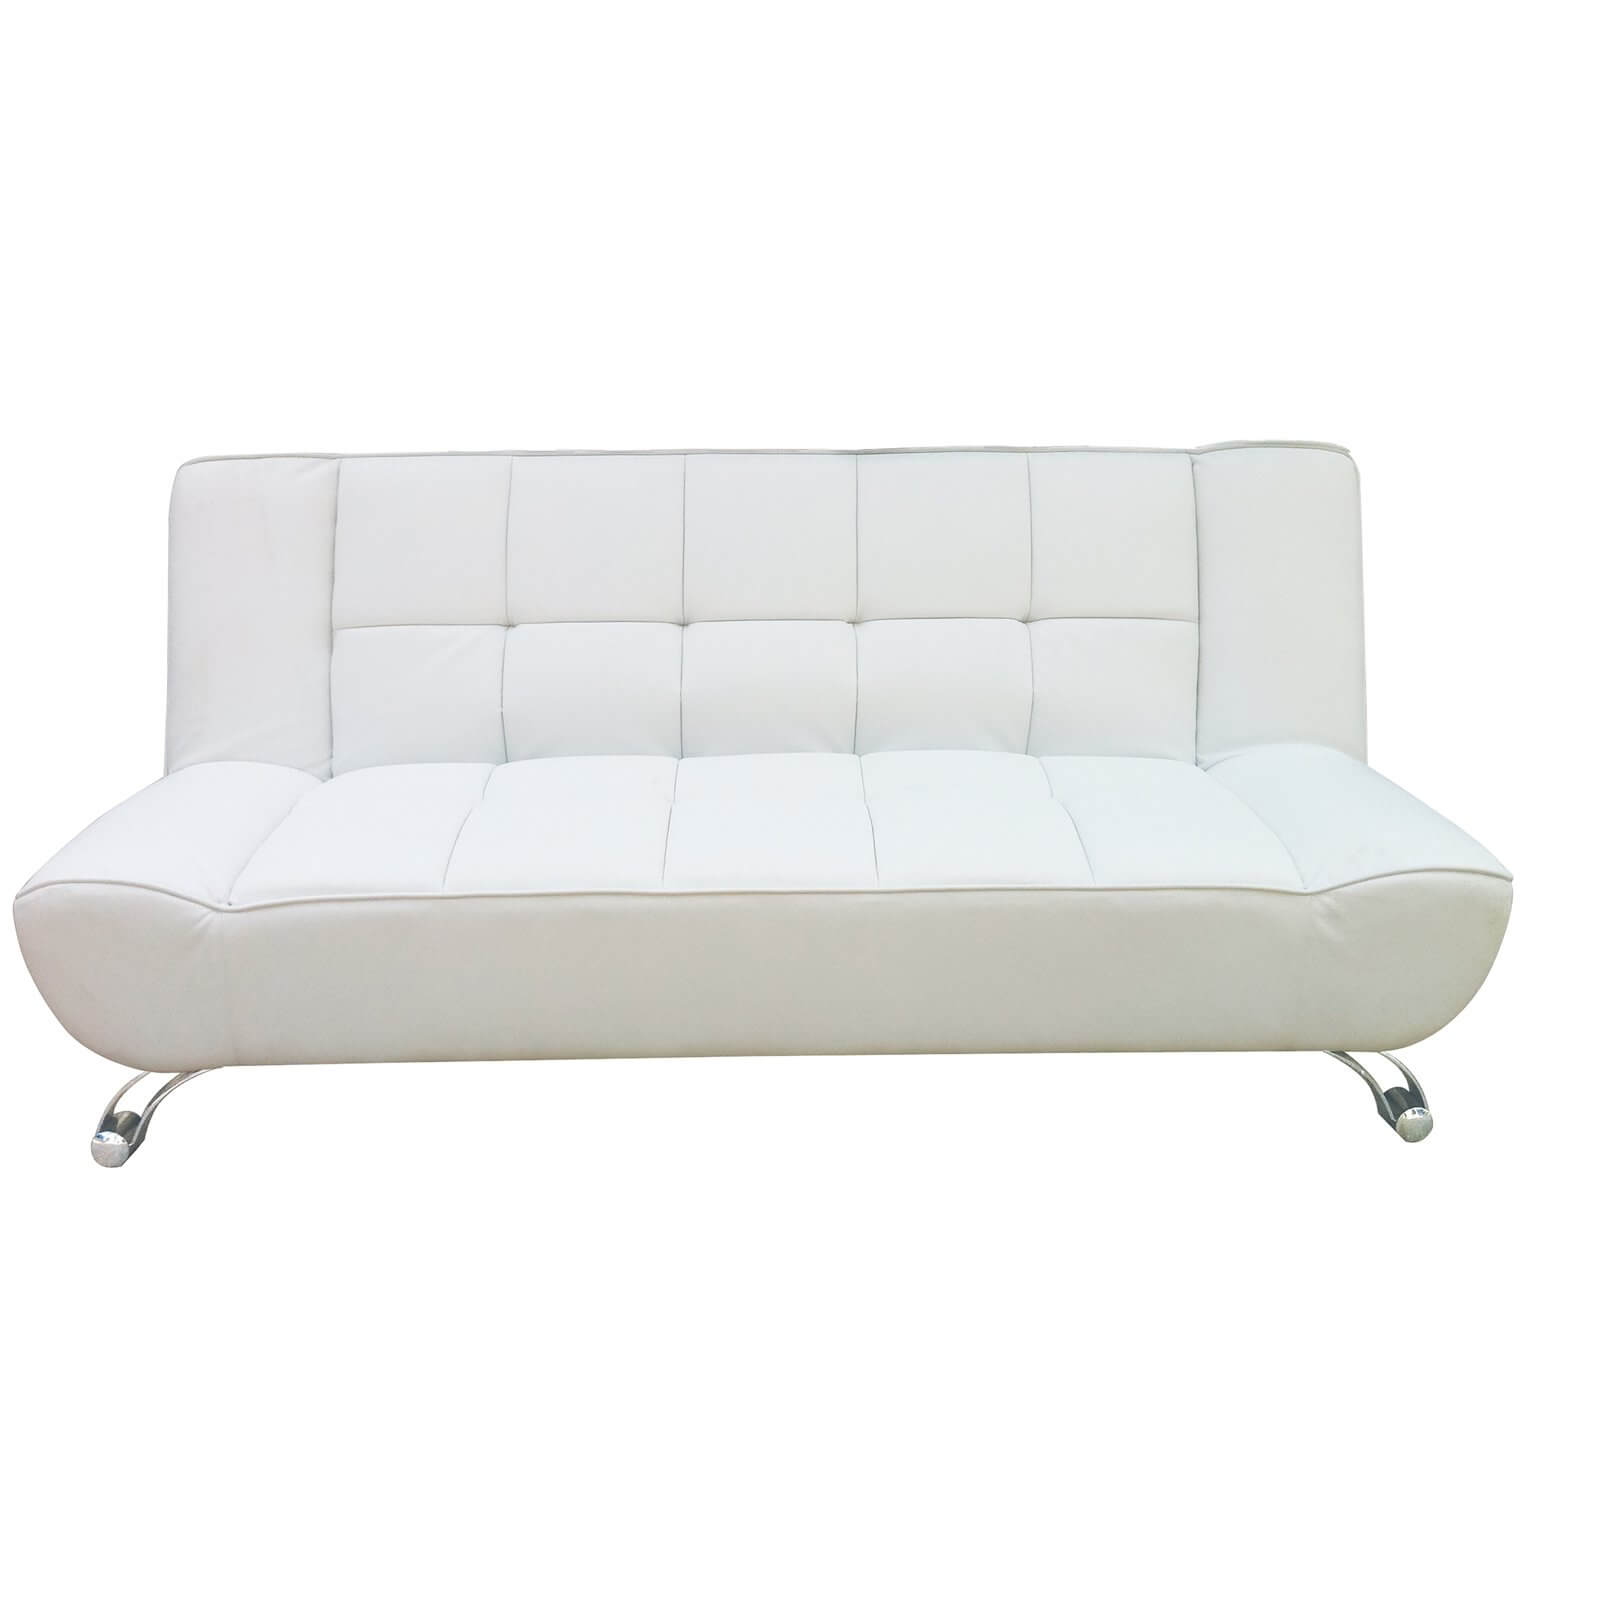 Vogue Sofa Bed - White - Faux Leather